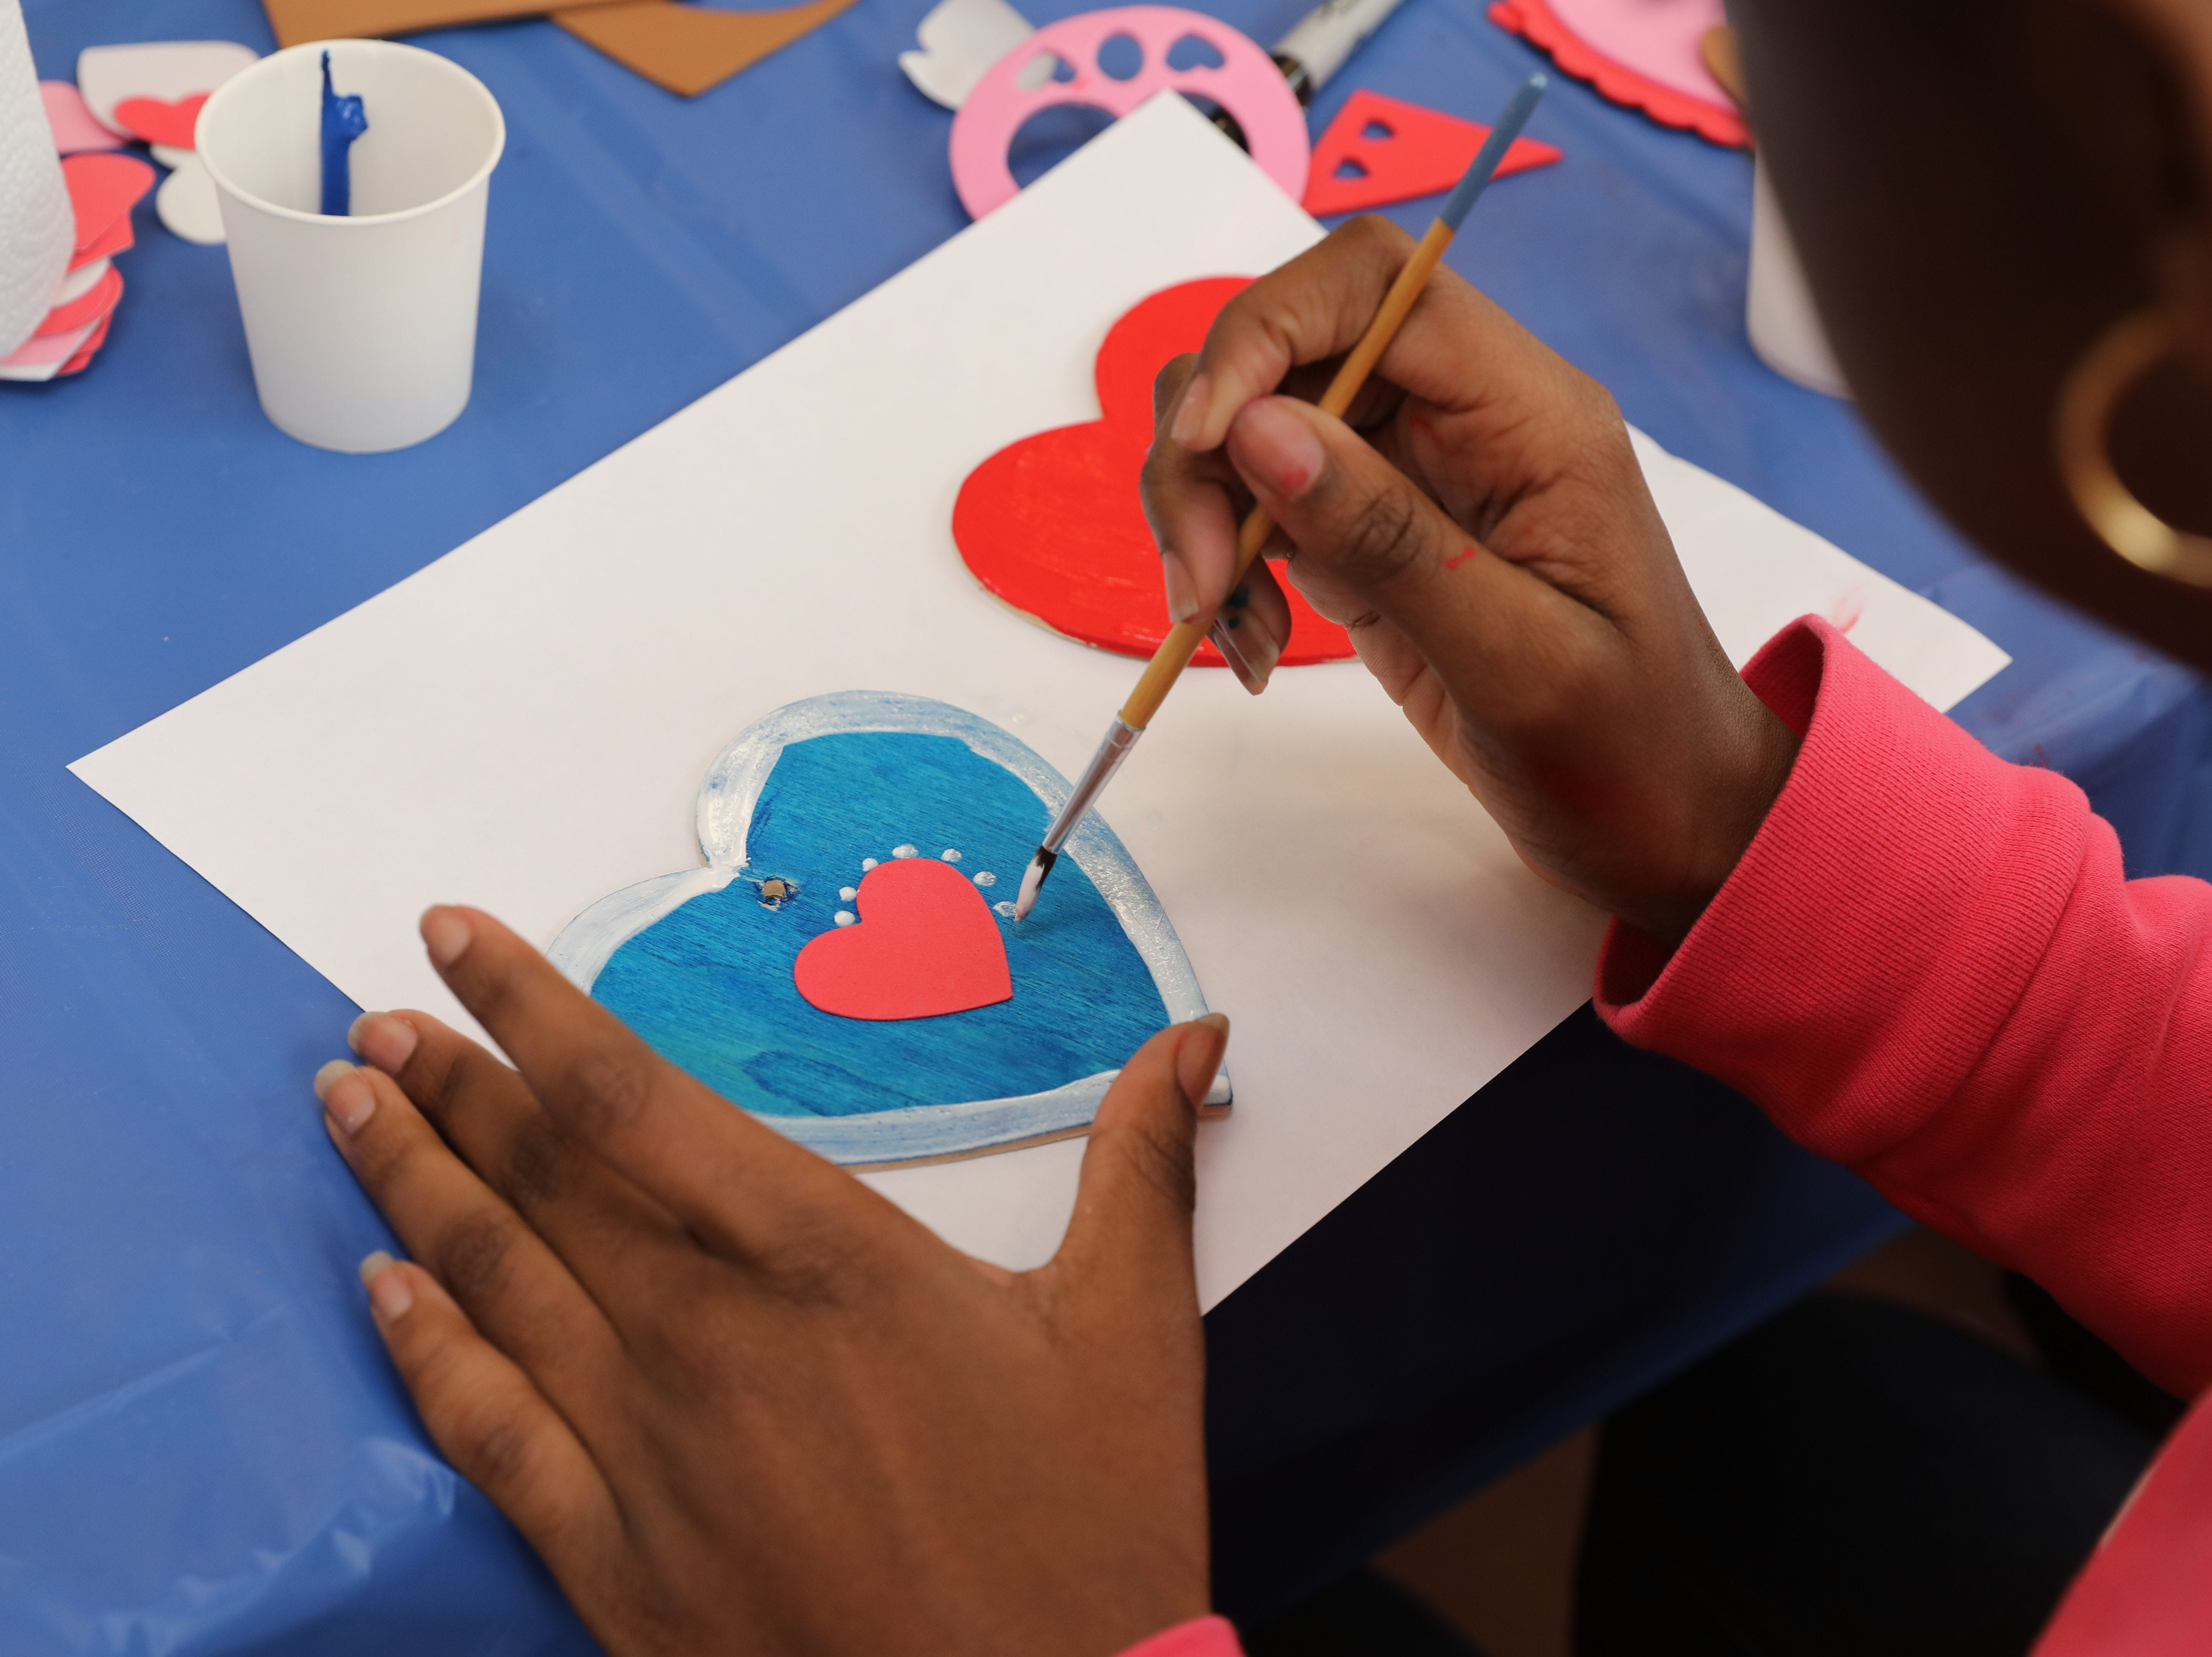 Bethany Webb, 12, from Valley Cottage, creates a Valentine's ornament during the Volunteer New York, Martin Luther King Jr. National Day of Service program at Dominican College in Orangeburg, Jan. 19, 2019.